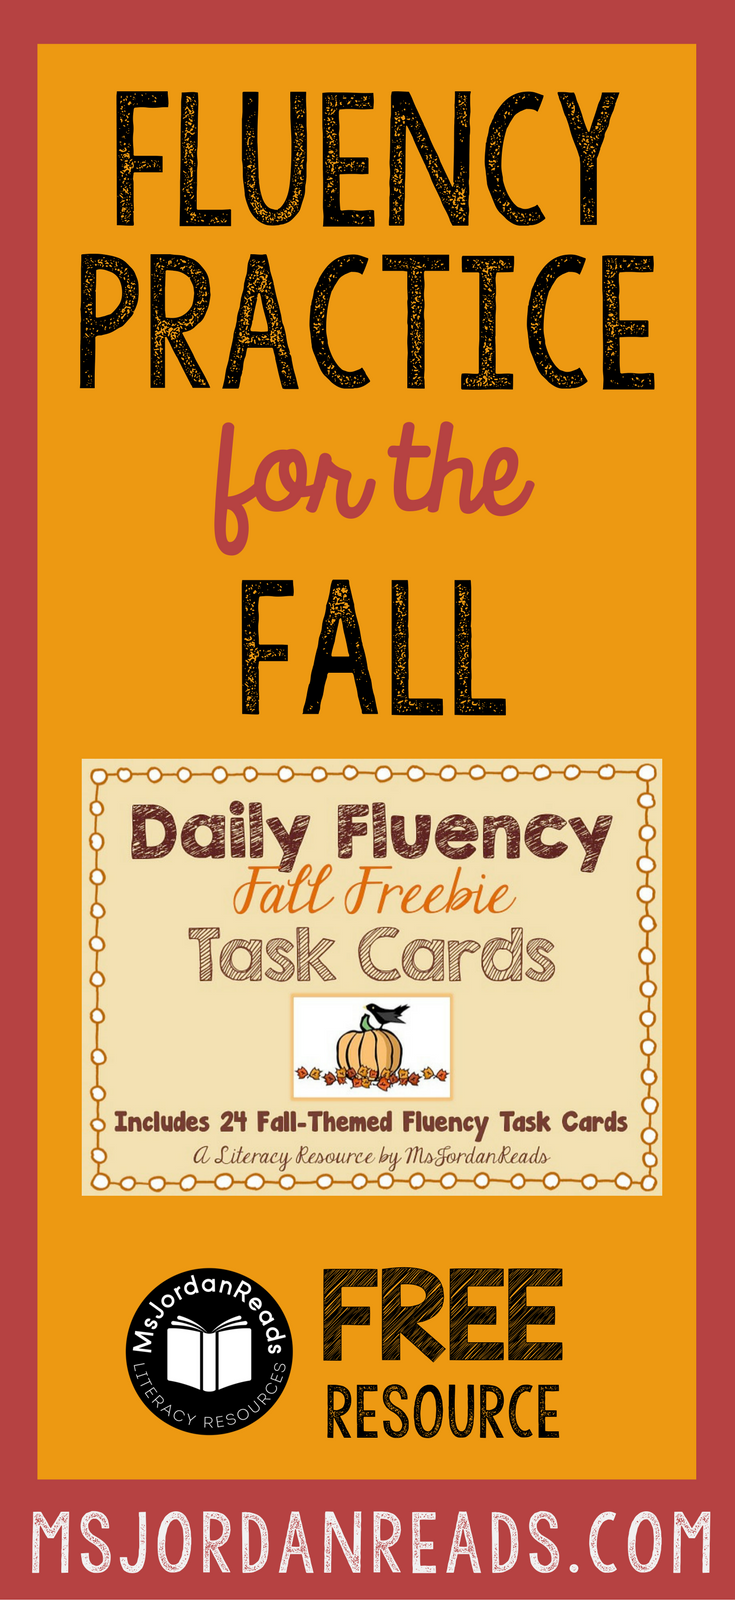 Fall Fluency Task Cards that you can download for your classroom FREE! | Free printable task cards for fluency practice at school or at home. Students will enjoy the variety of fluency tasks!